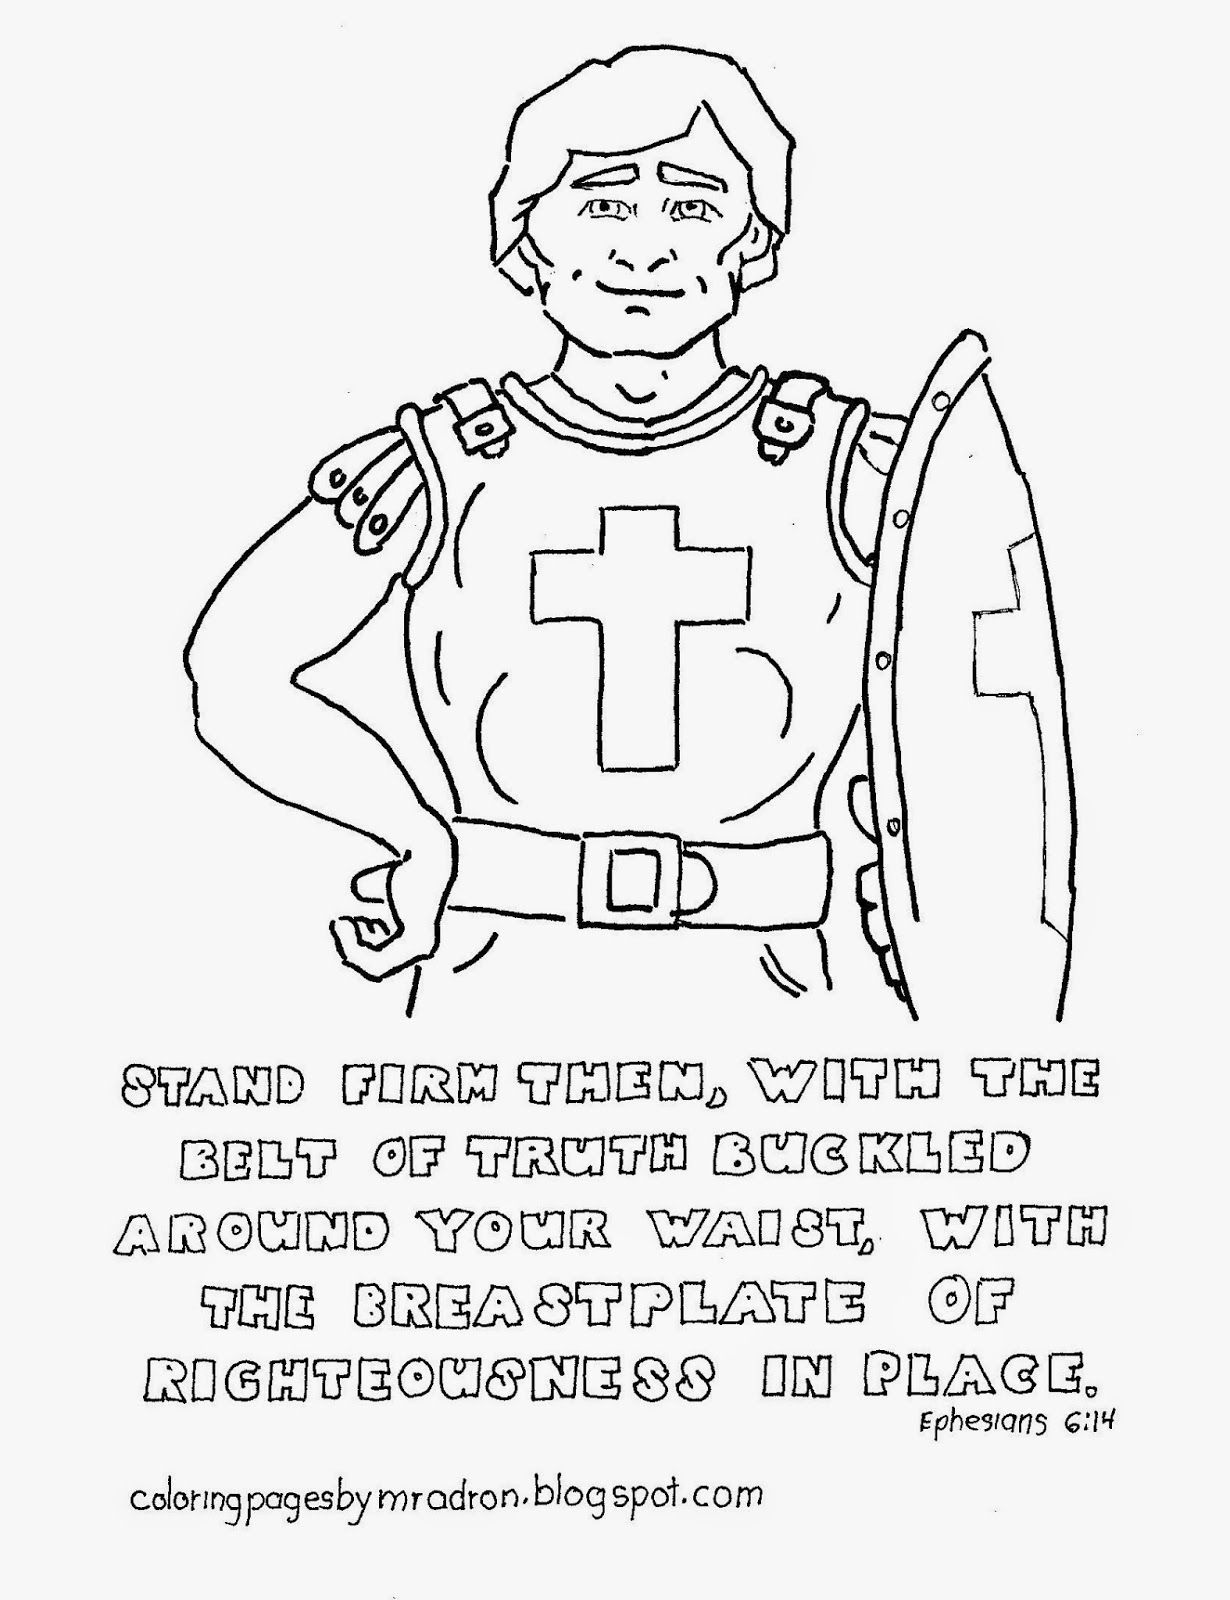 Free Ephesians 6:14 coloring page. | Bybel | Pinterest